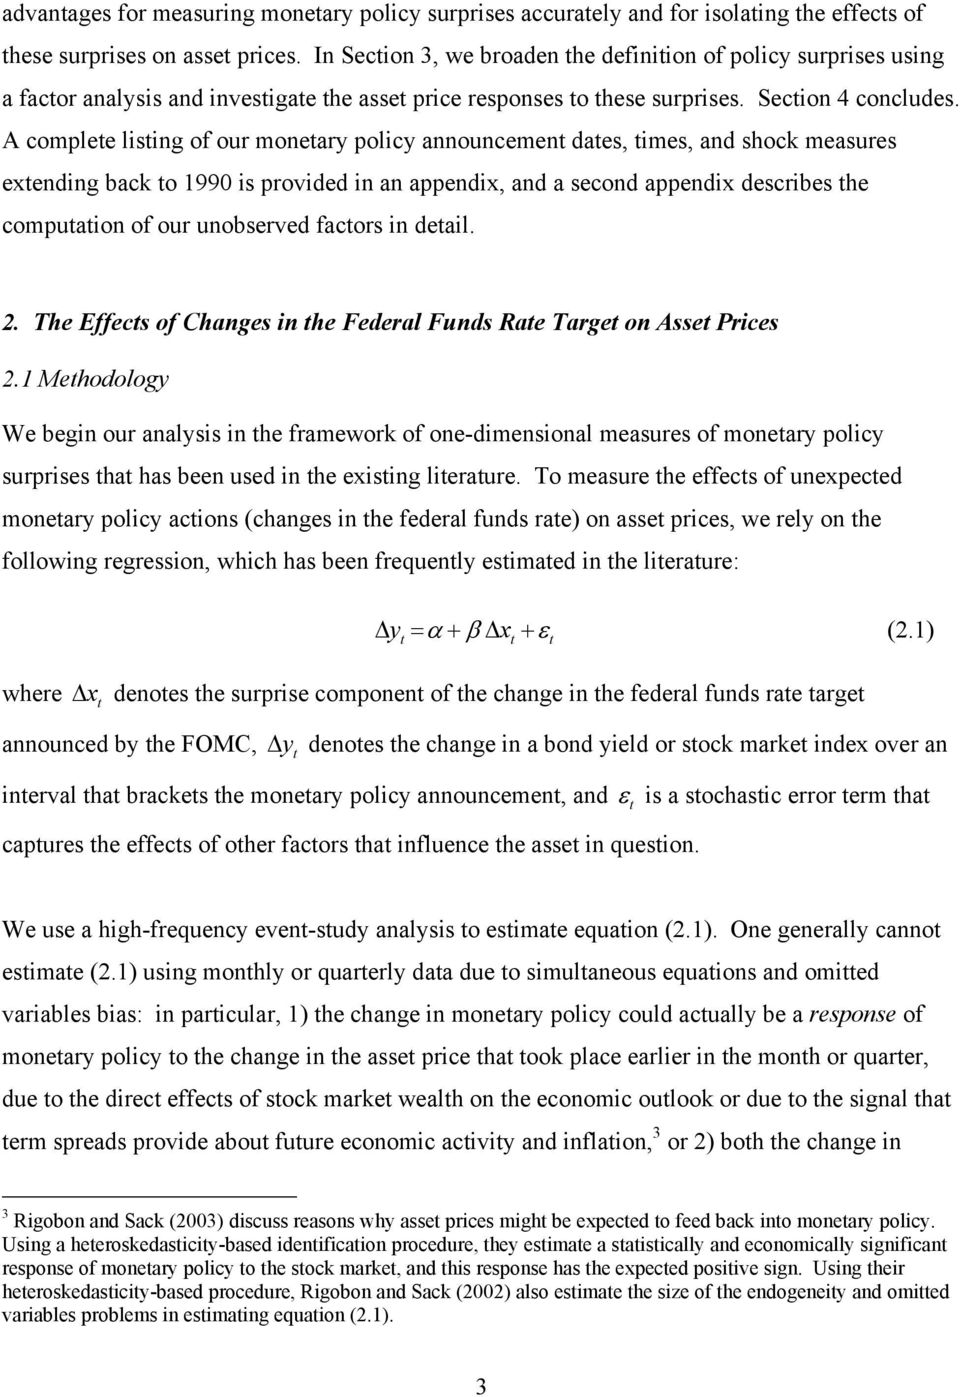 A complete listing of our monetary policy announcement dates, times, and shock measures extending back to 1990 is provided in an appendix, and a second appendix describes the computation of our